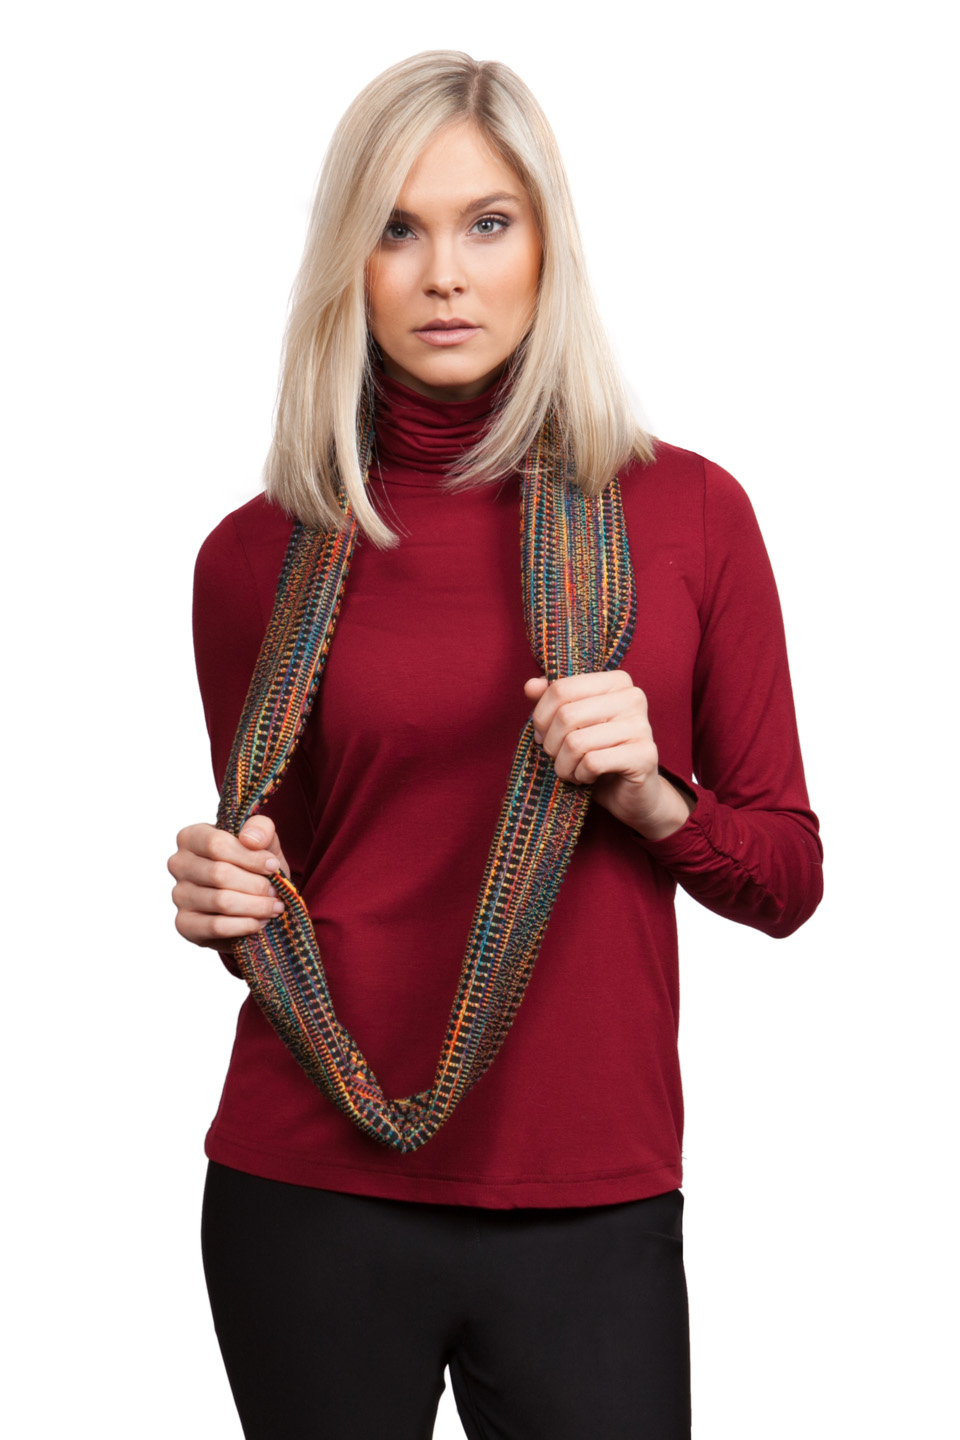 Copy of Style # 33405-16, p. 7<br>Cashmerette Separates<br>Color: Garnet, 10 colors<br>Fair Isle Infinity Scarf, p. 11